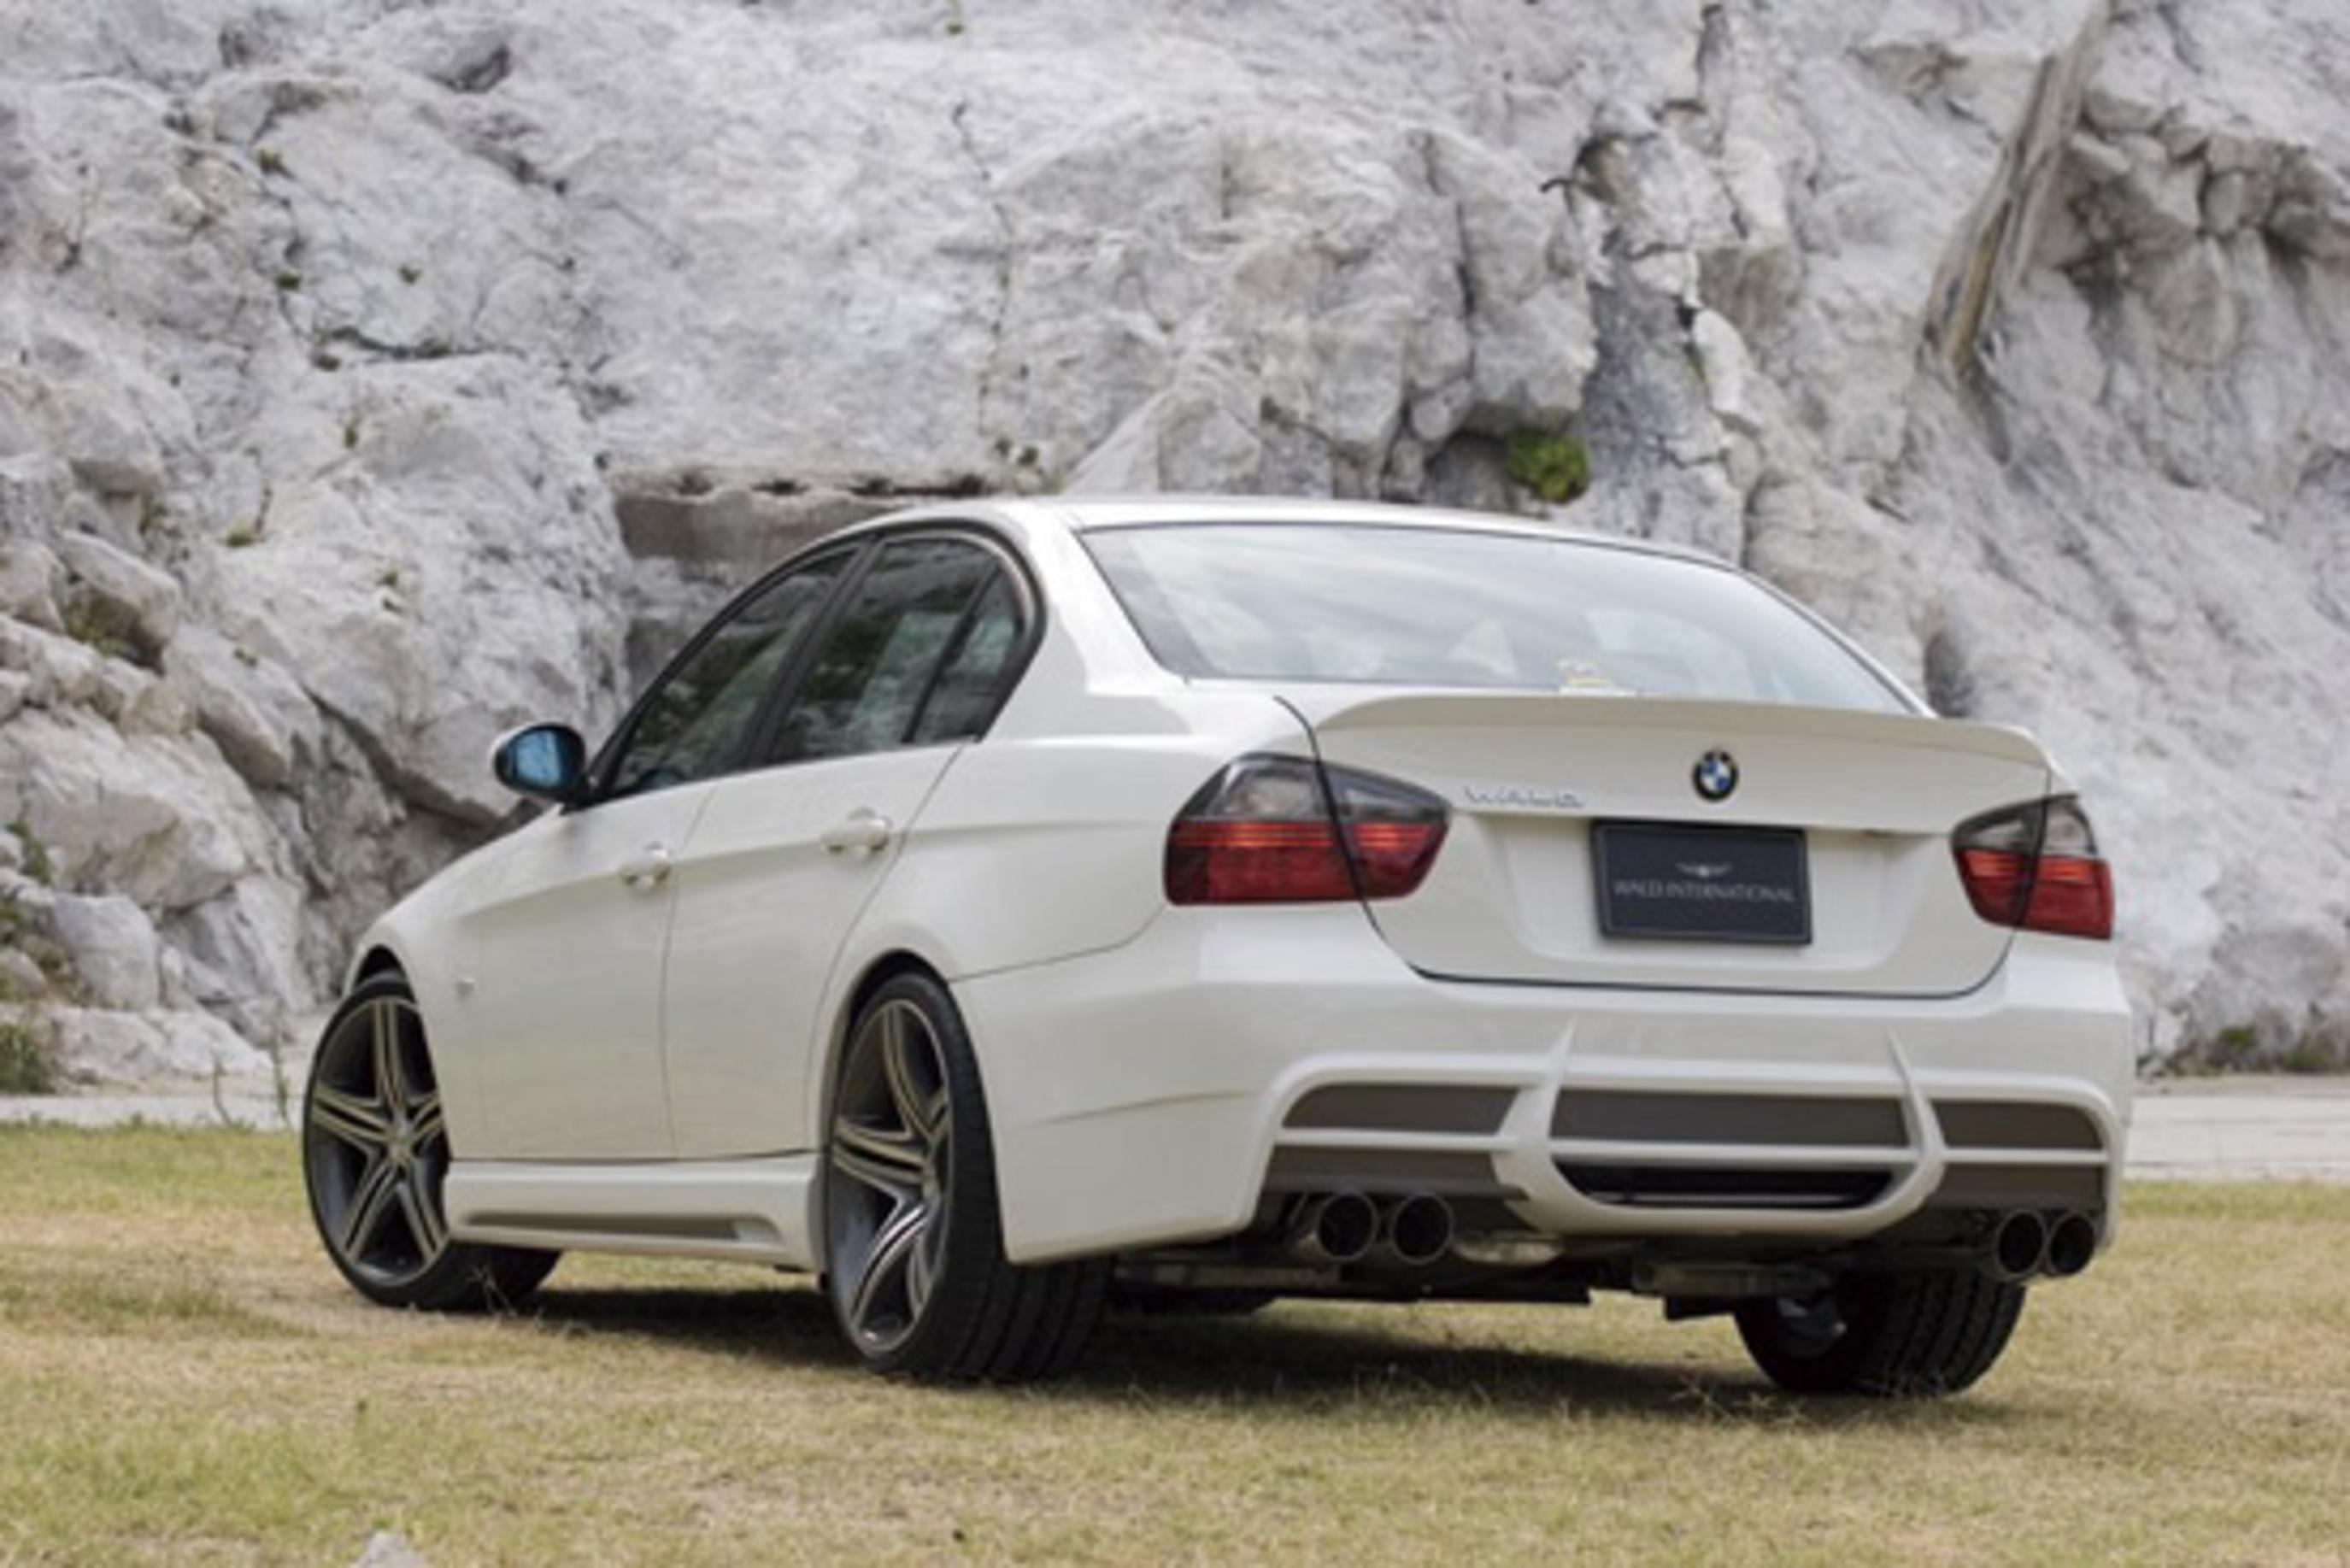 New Bodykit For 3series By Wald International